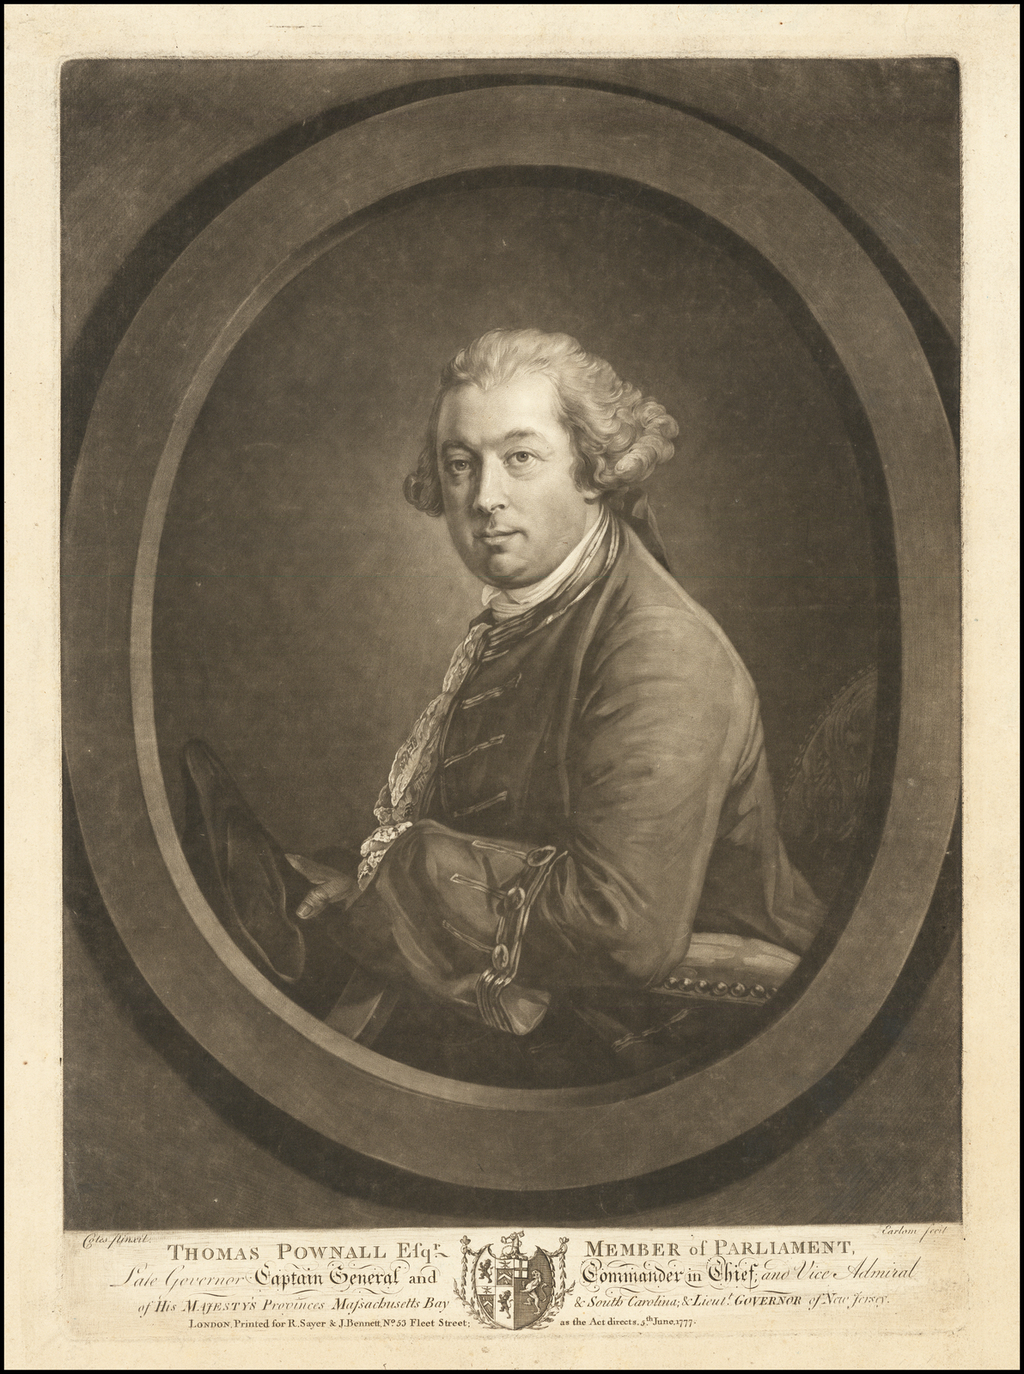 Thomas Pownall Esqr. Member of Parliament, Late Governor Captain General and Commander in Chief; and Vice Admiral of His Majesty's Provinces Massachusetts Bay & South Carolina; & Lieut Governor of New Jersey . . . 1777 By